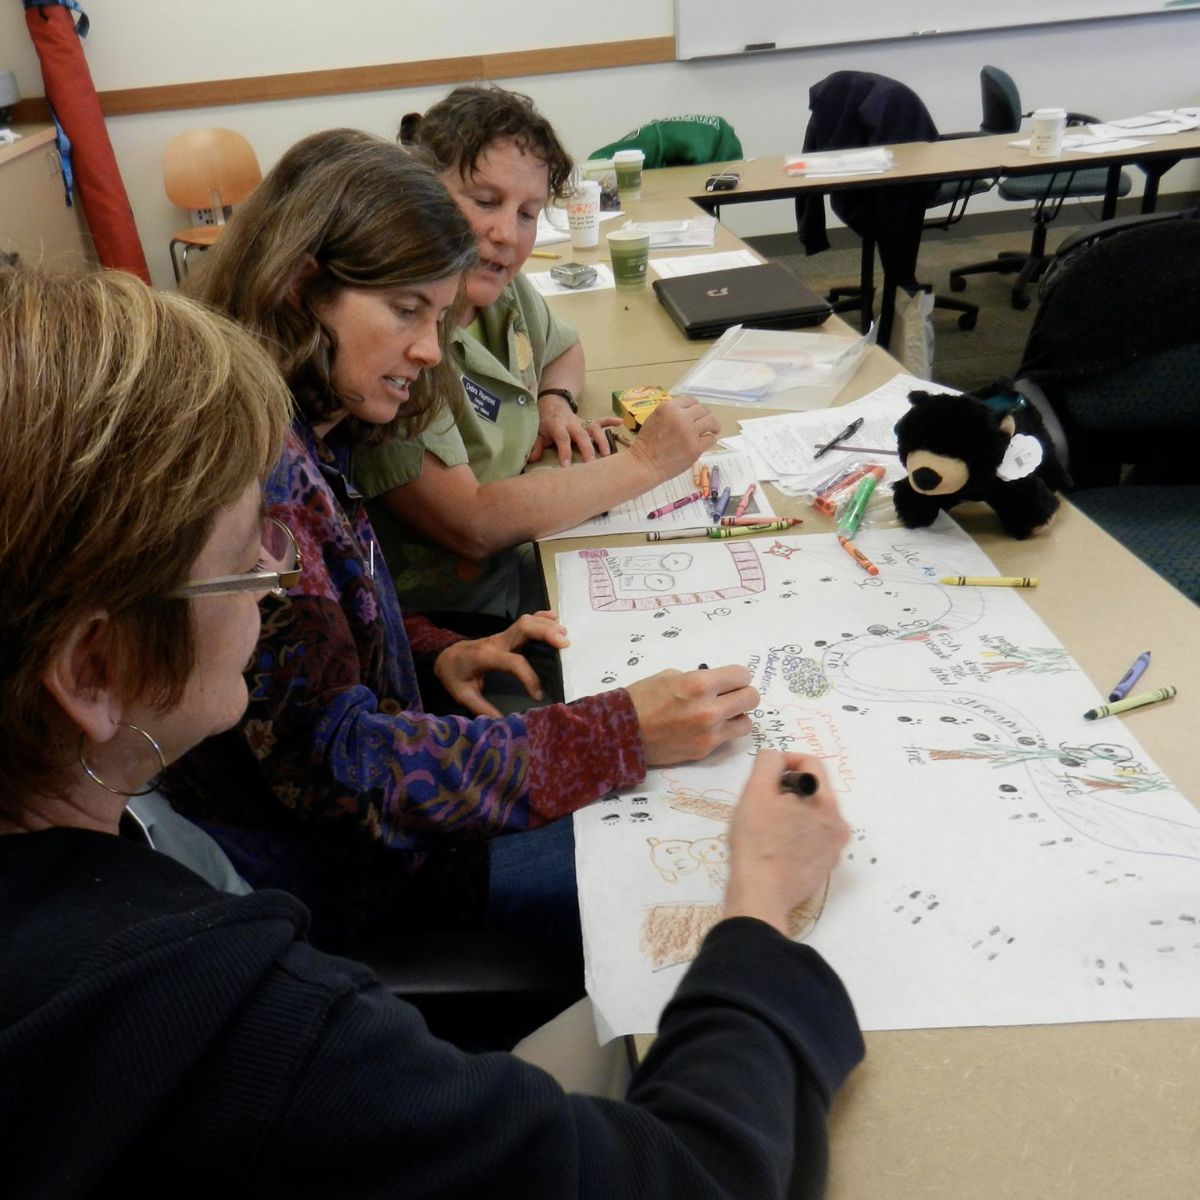 Teachers working with maps at a desk. Photo: C-GEO